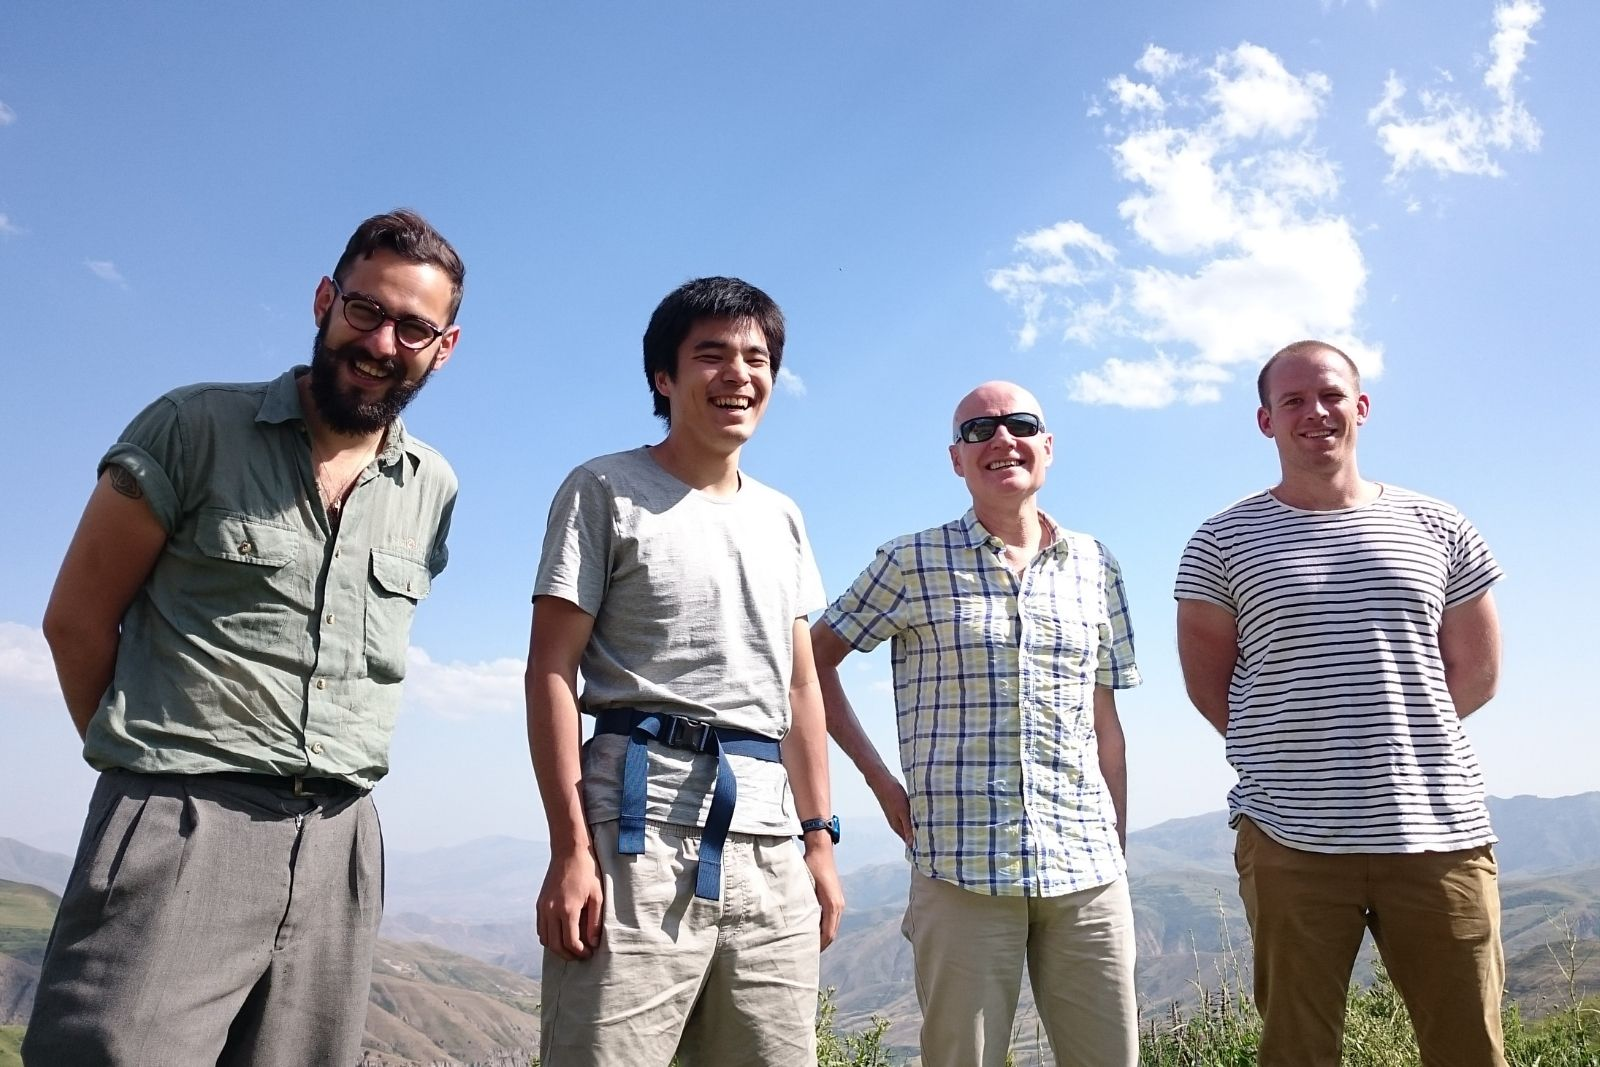 Participants of Armenian studies summer school 2016 in the mountains. From left to right: Nicholas Matheou, Chihiro Taguchi, John Wynter, Thomas Jurczyk